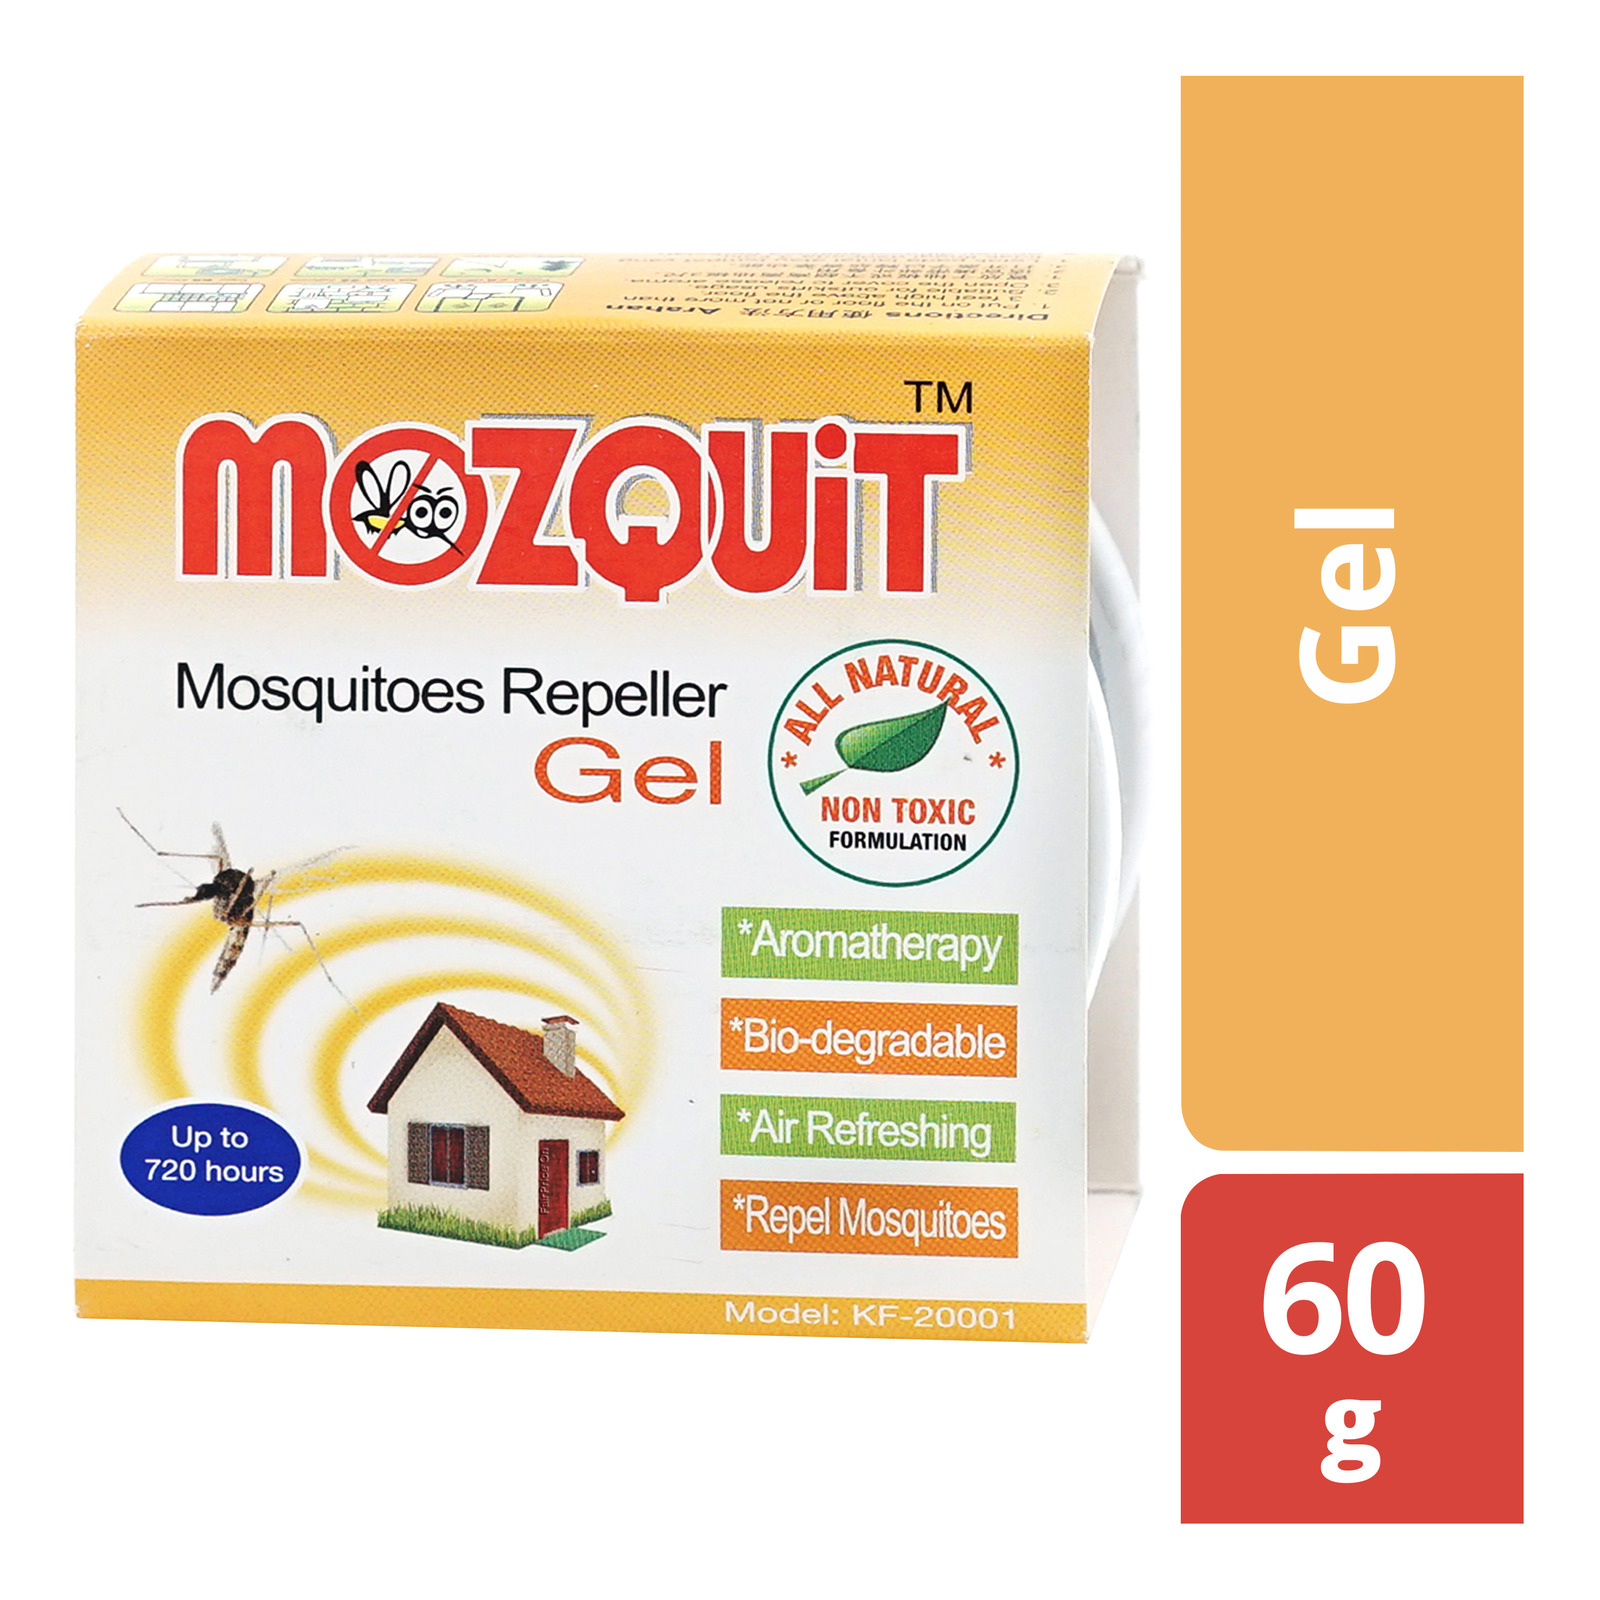 MOZQUIT Mosquitoes Repeller Gel 60g